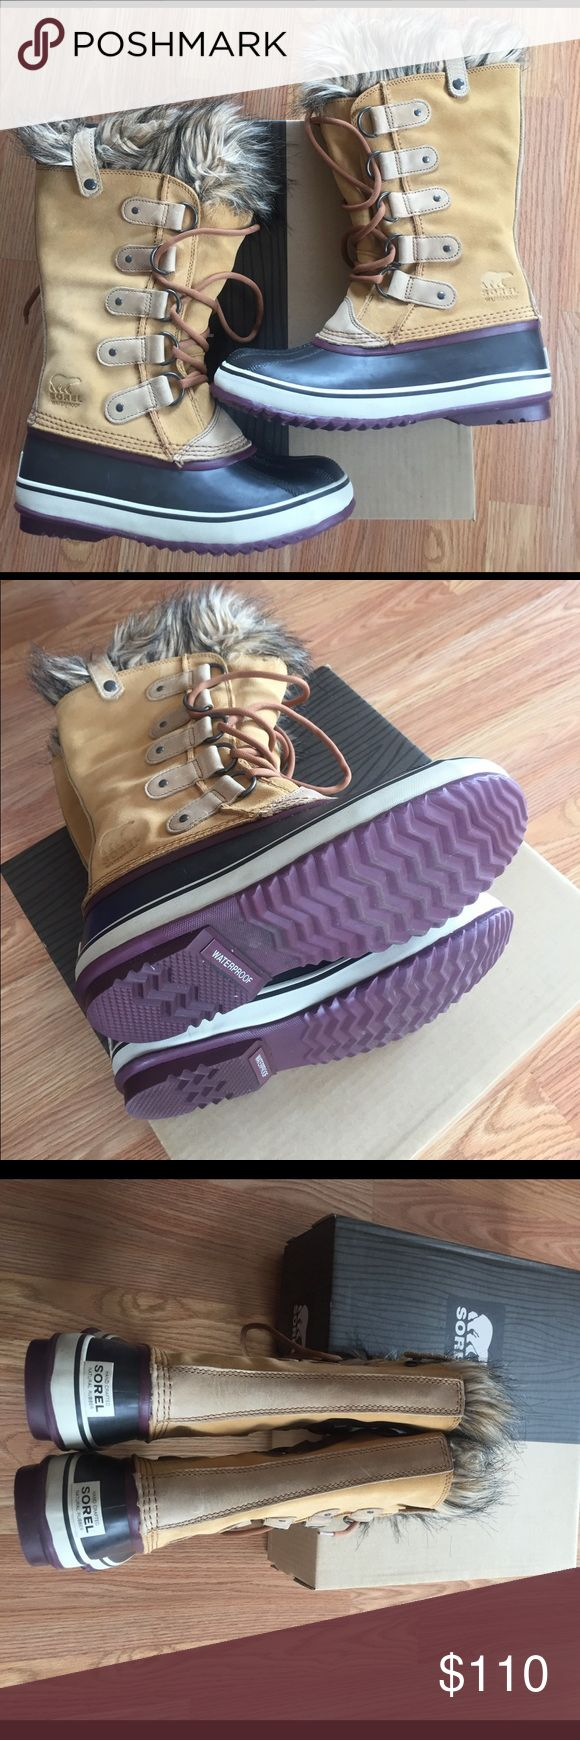 Women sorel boots Women sorel boots size 7 NEW AND comes with Box Sorel Shoes Winter & Rain Boots